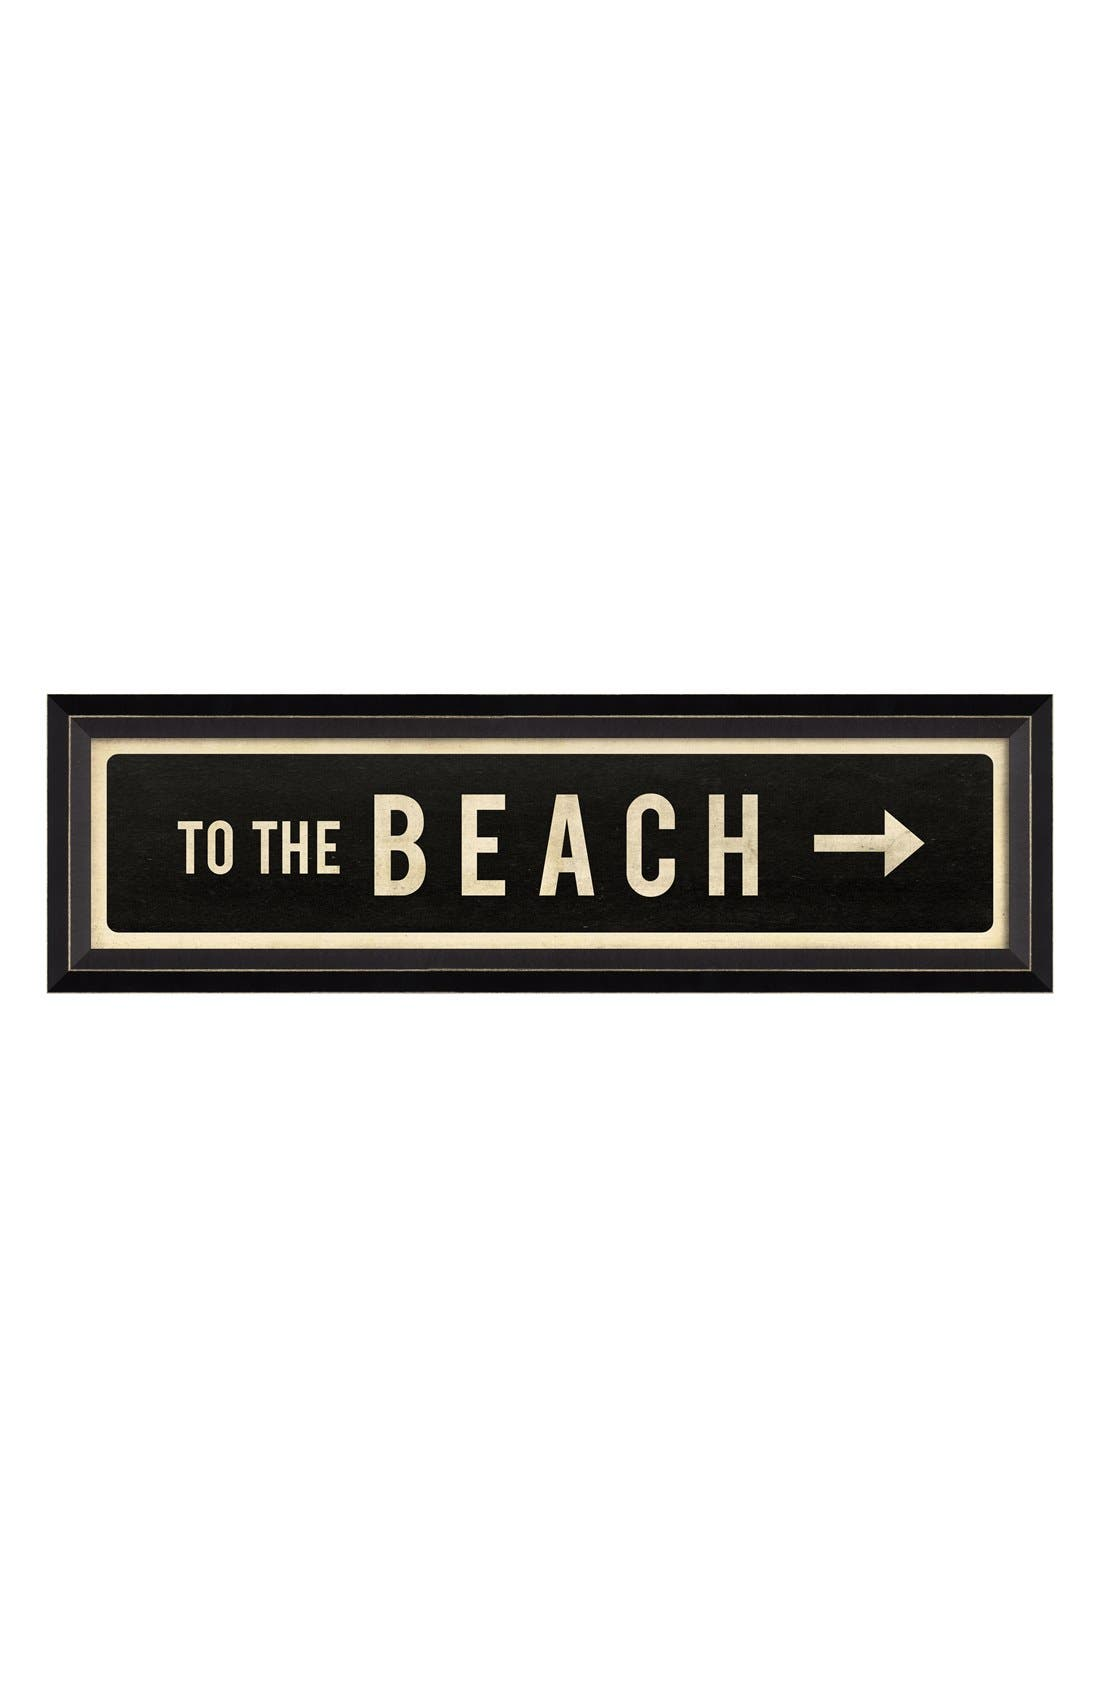 Alternate Image 1 Selected - Spicher and Company 'To the Beach' Vintage Look Sign Artwork